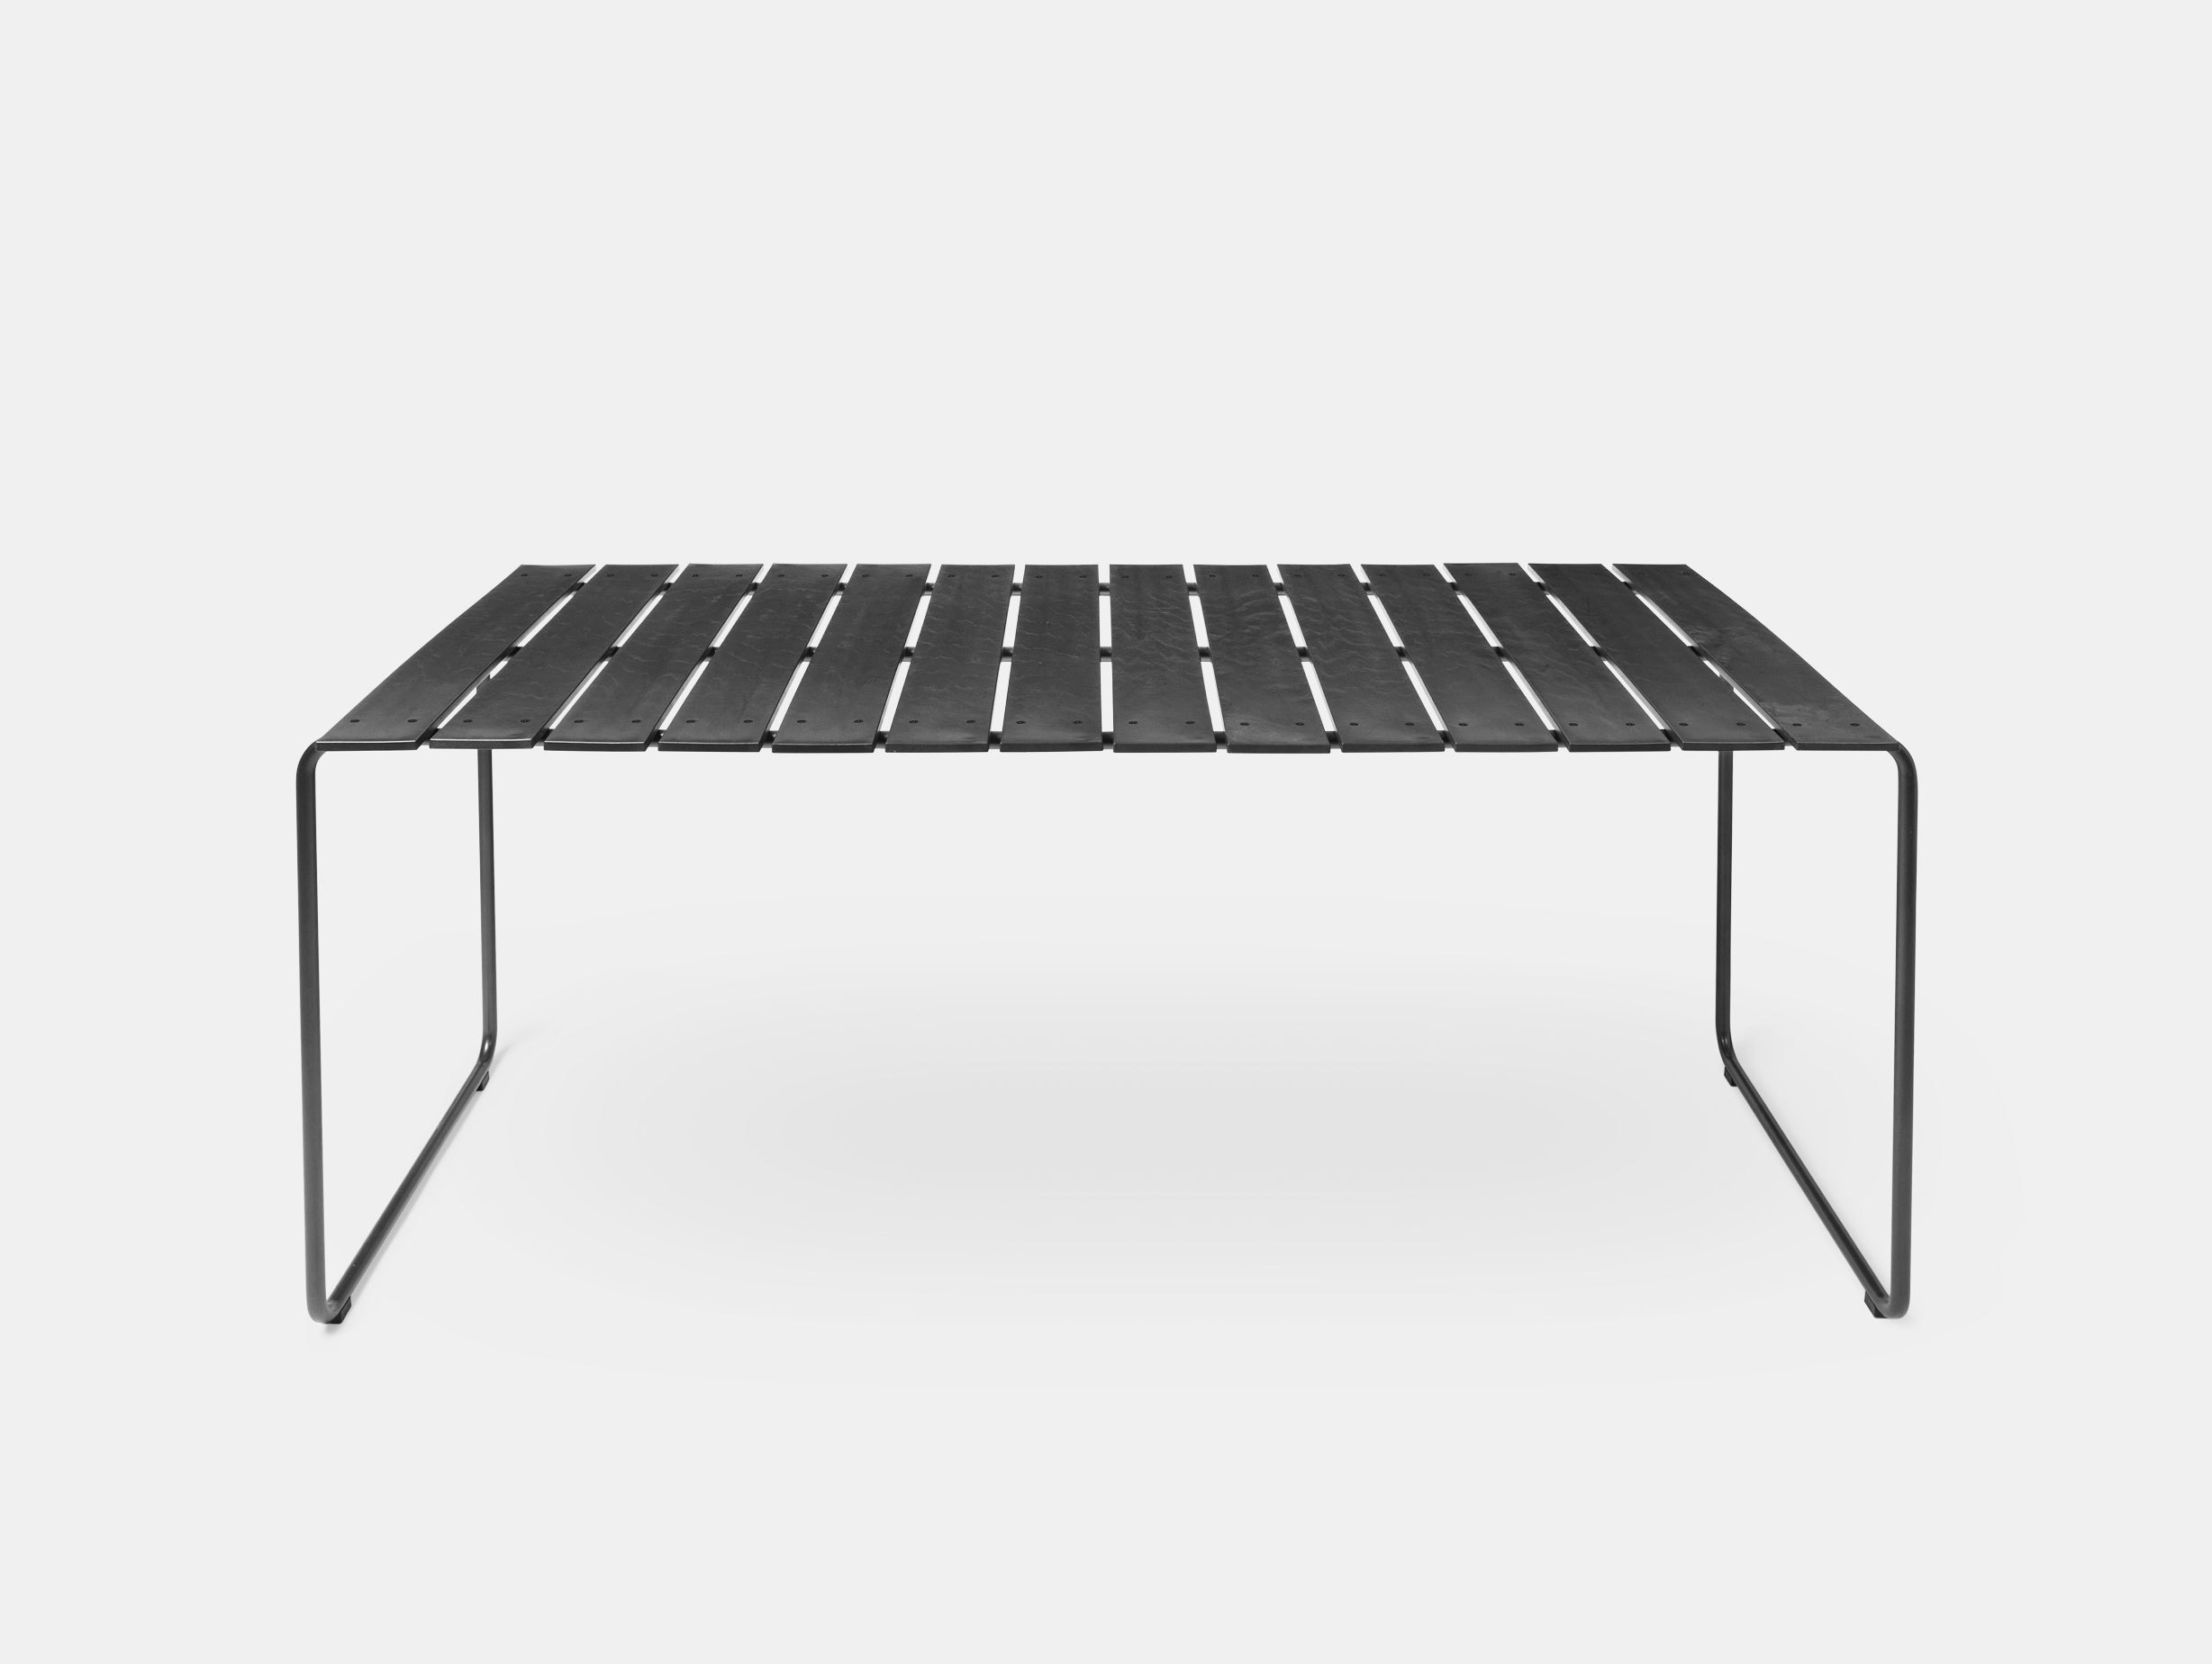 Mater Ocean Table 140X70 Black Nanna Ditzel